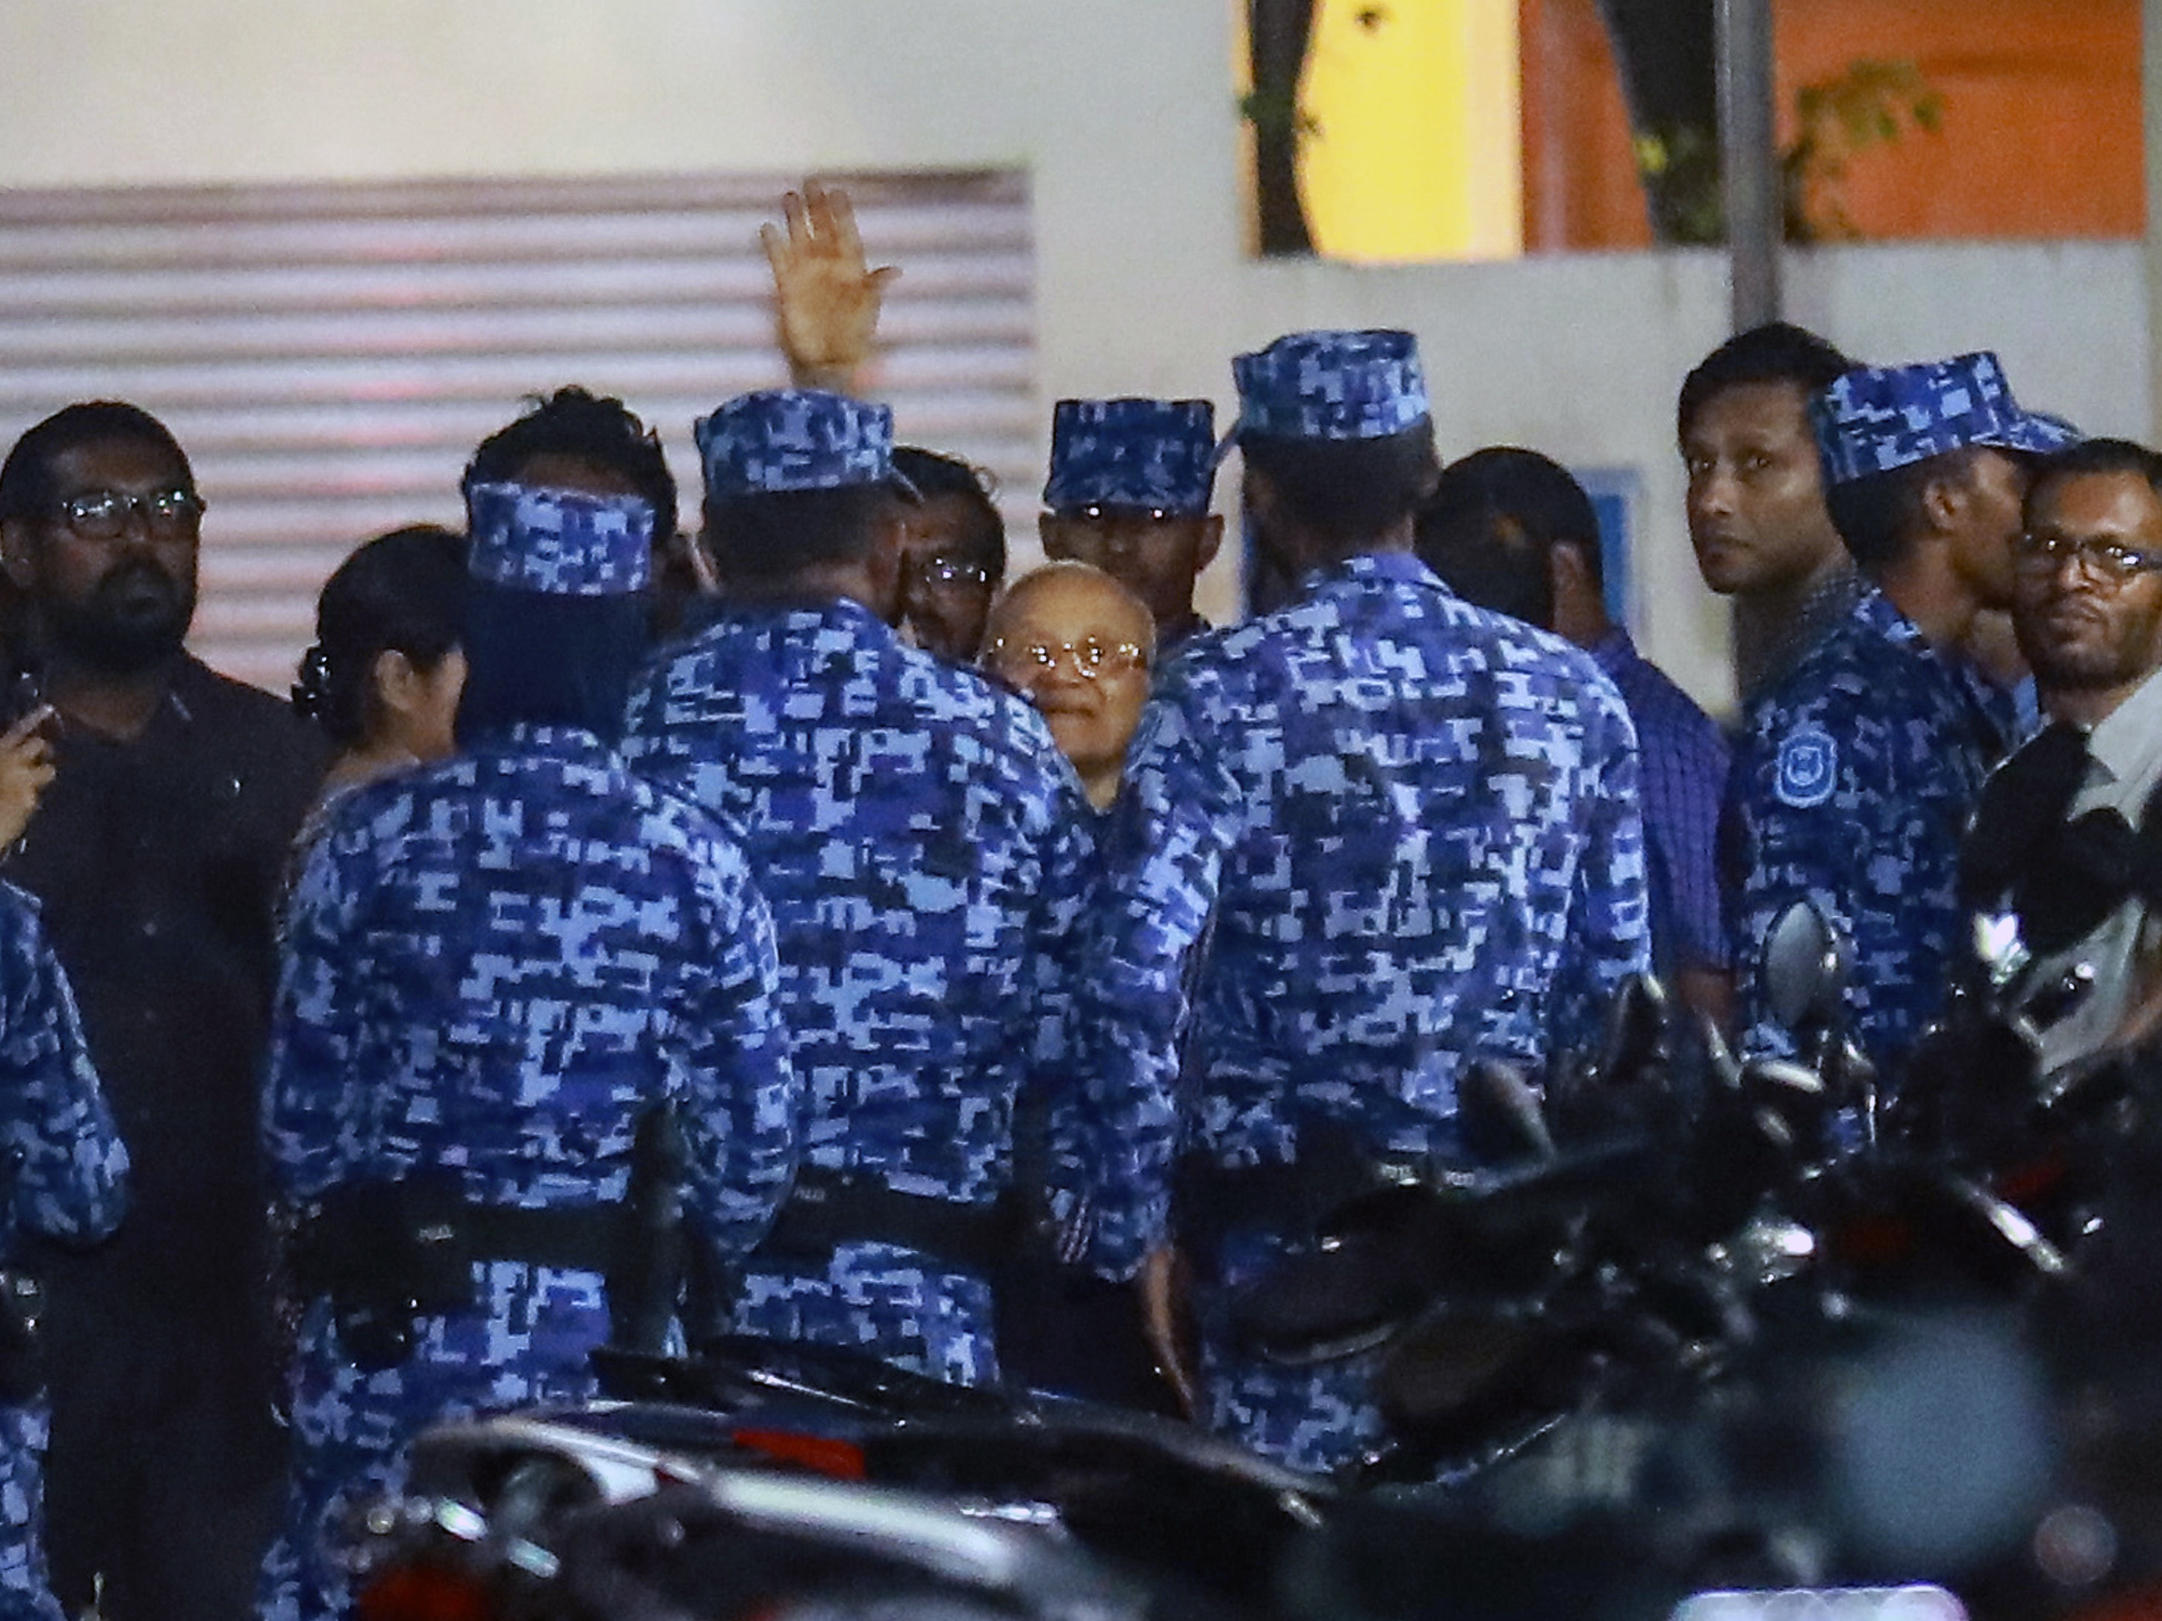 Maldives Chief Justice detained as president declares martial law